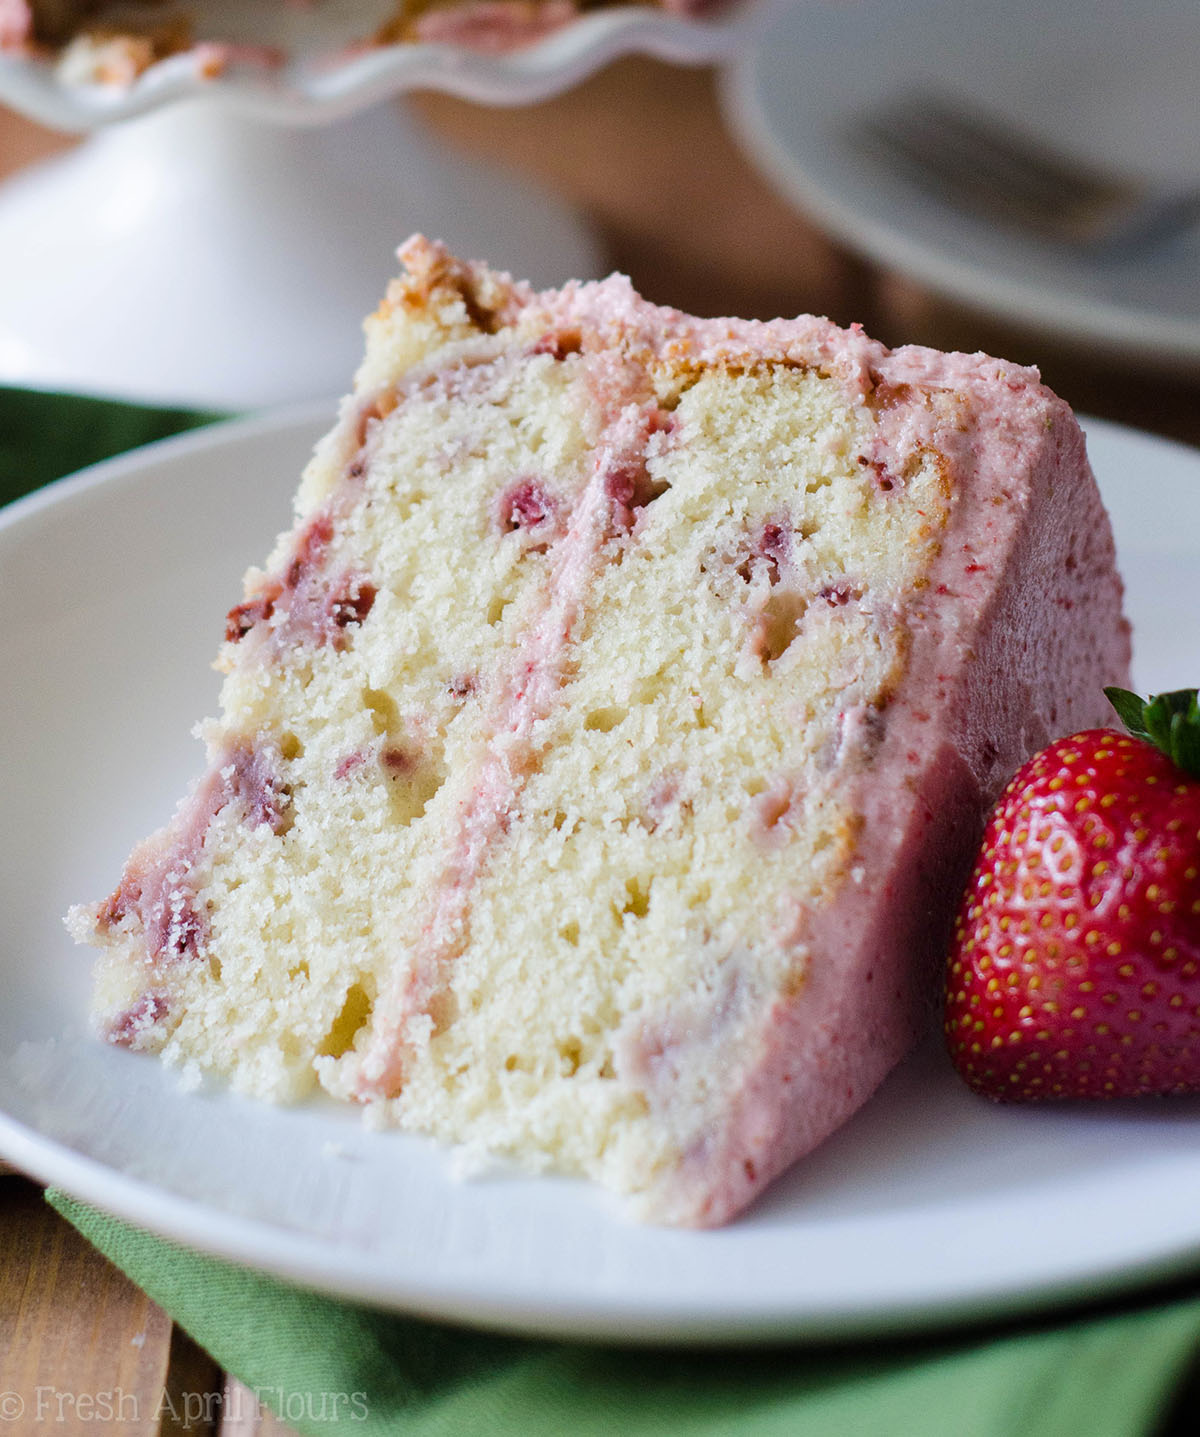 Soft and fluffy homemade strawberry cake made with fresh strawberries and topped with a creamy strawberry buttercream.